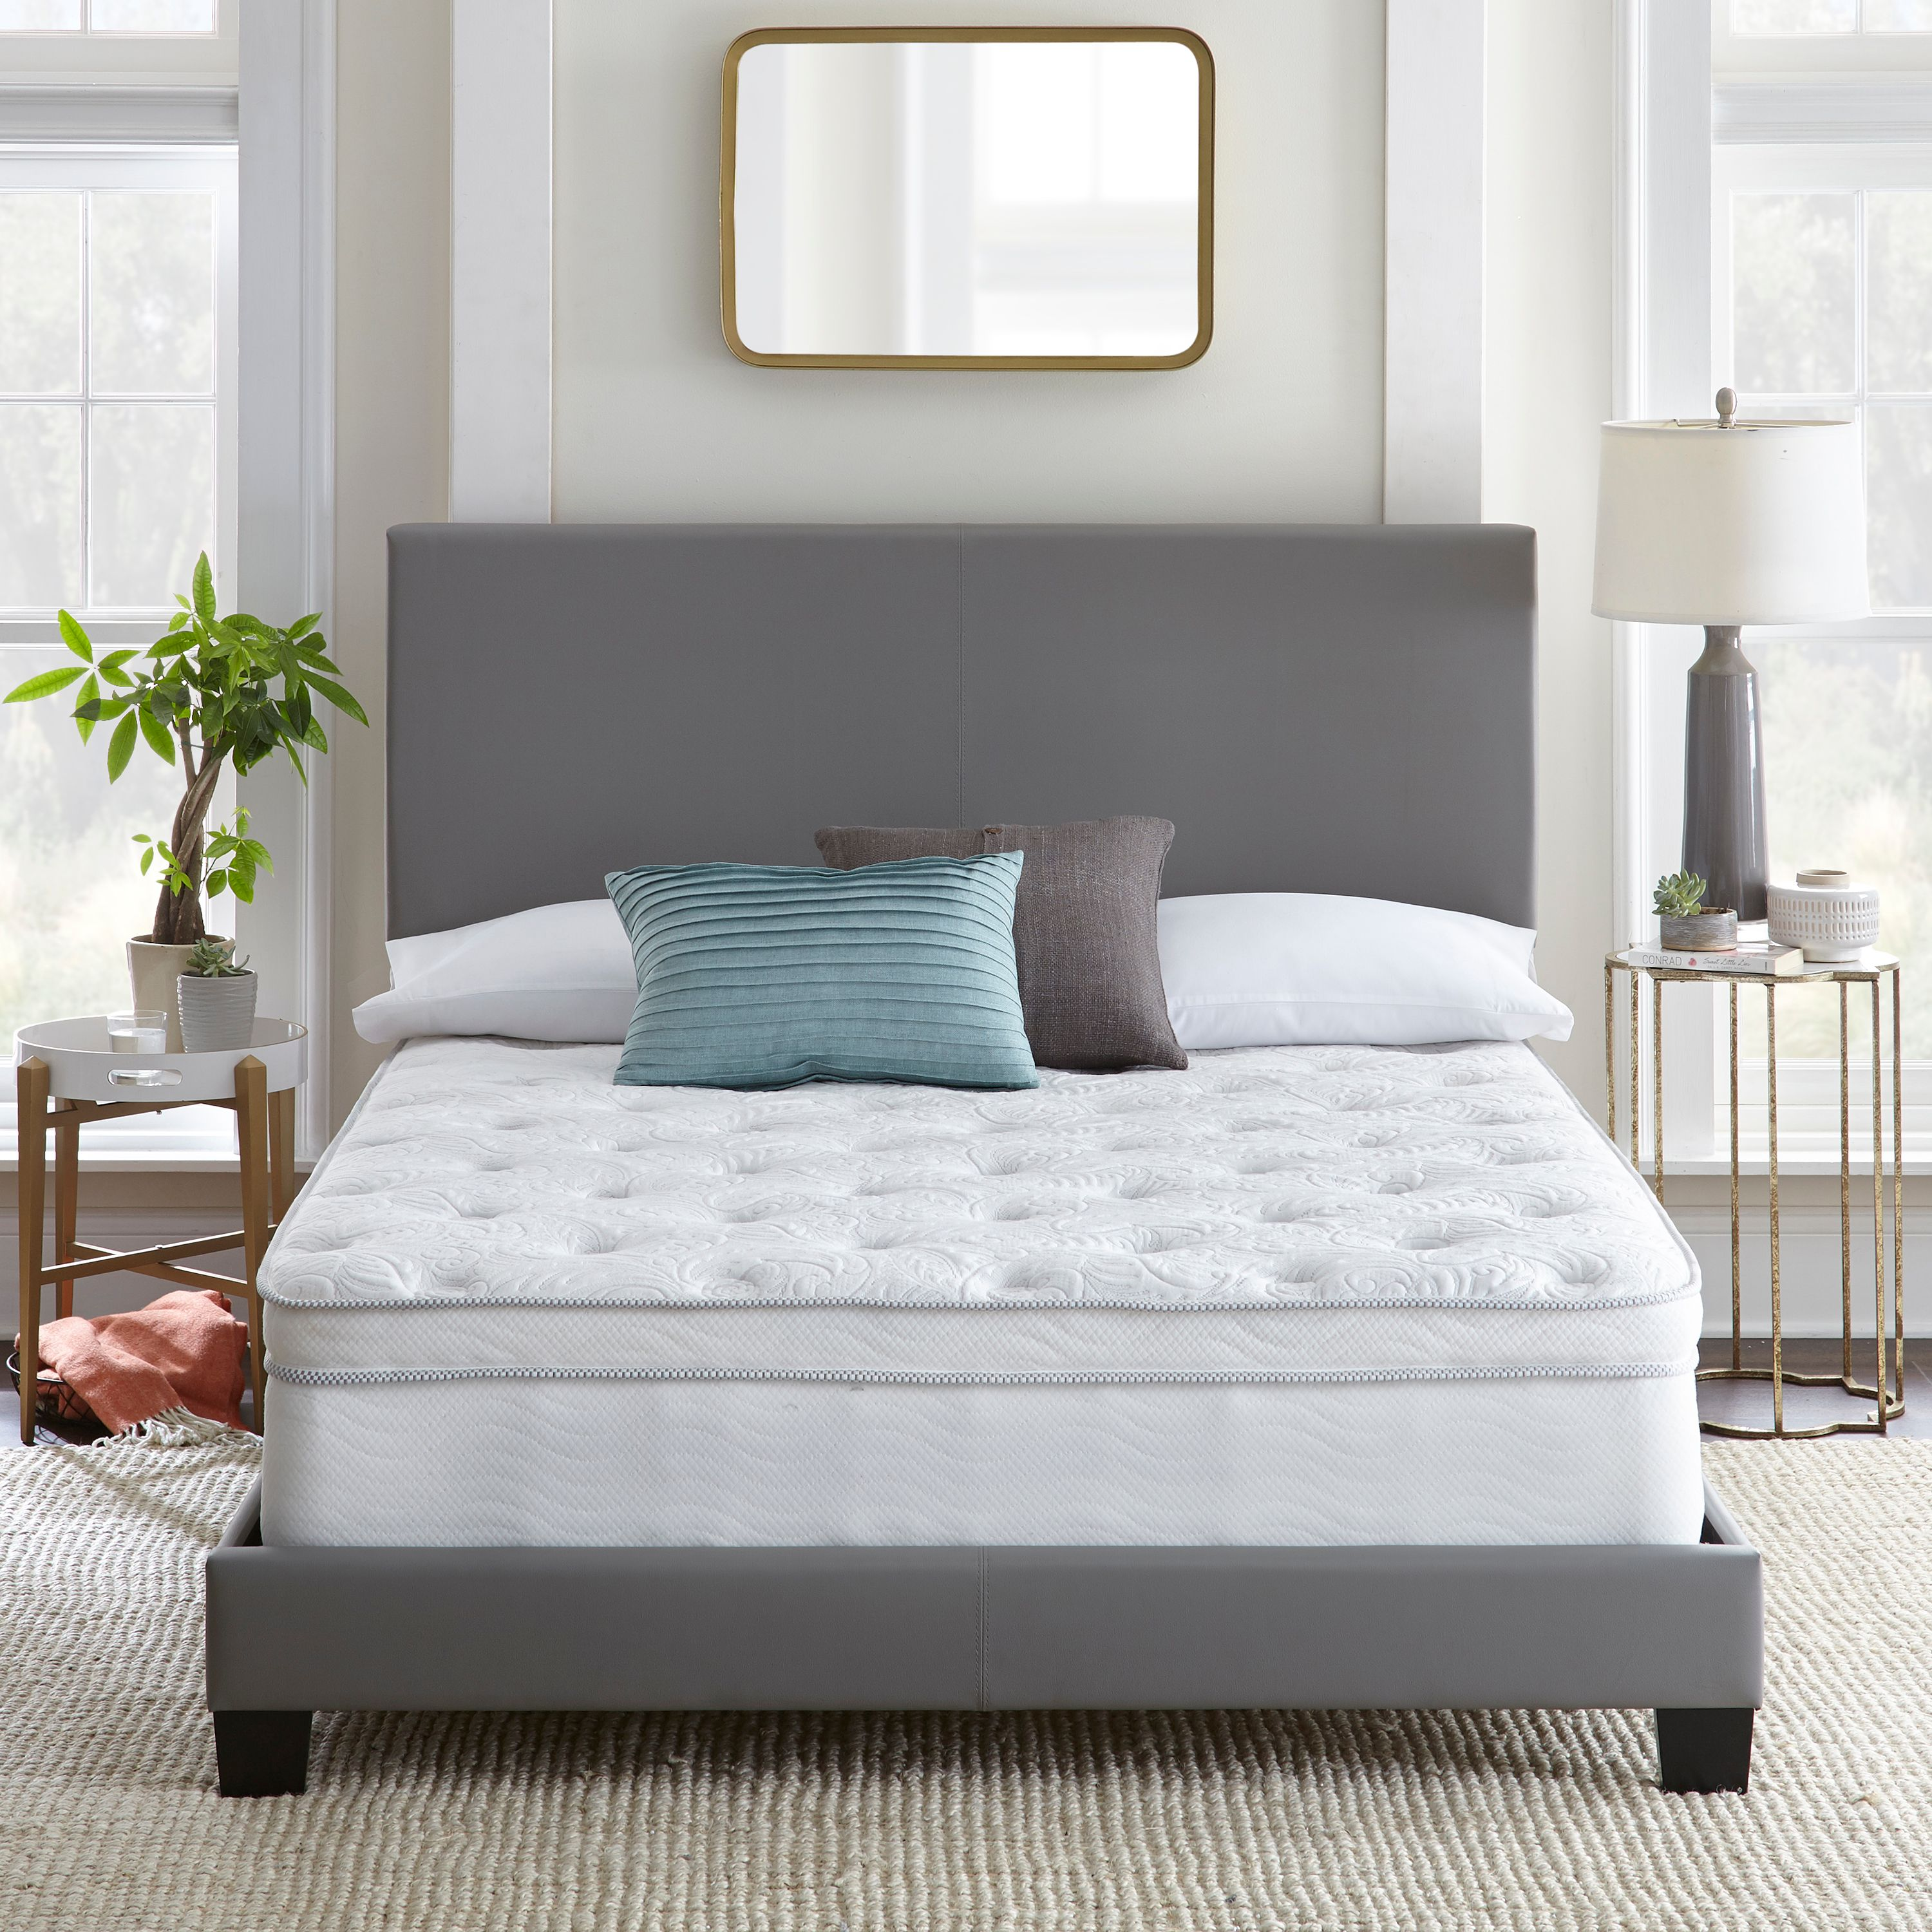 Contura Flex 12 Inch Plush Euro Top Innerspring Hybrid Mattress Bed